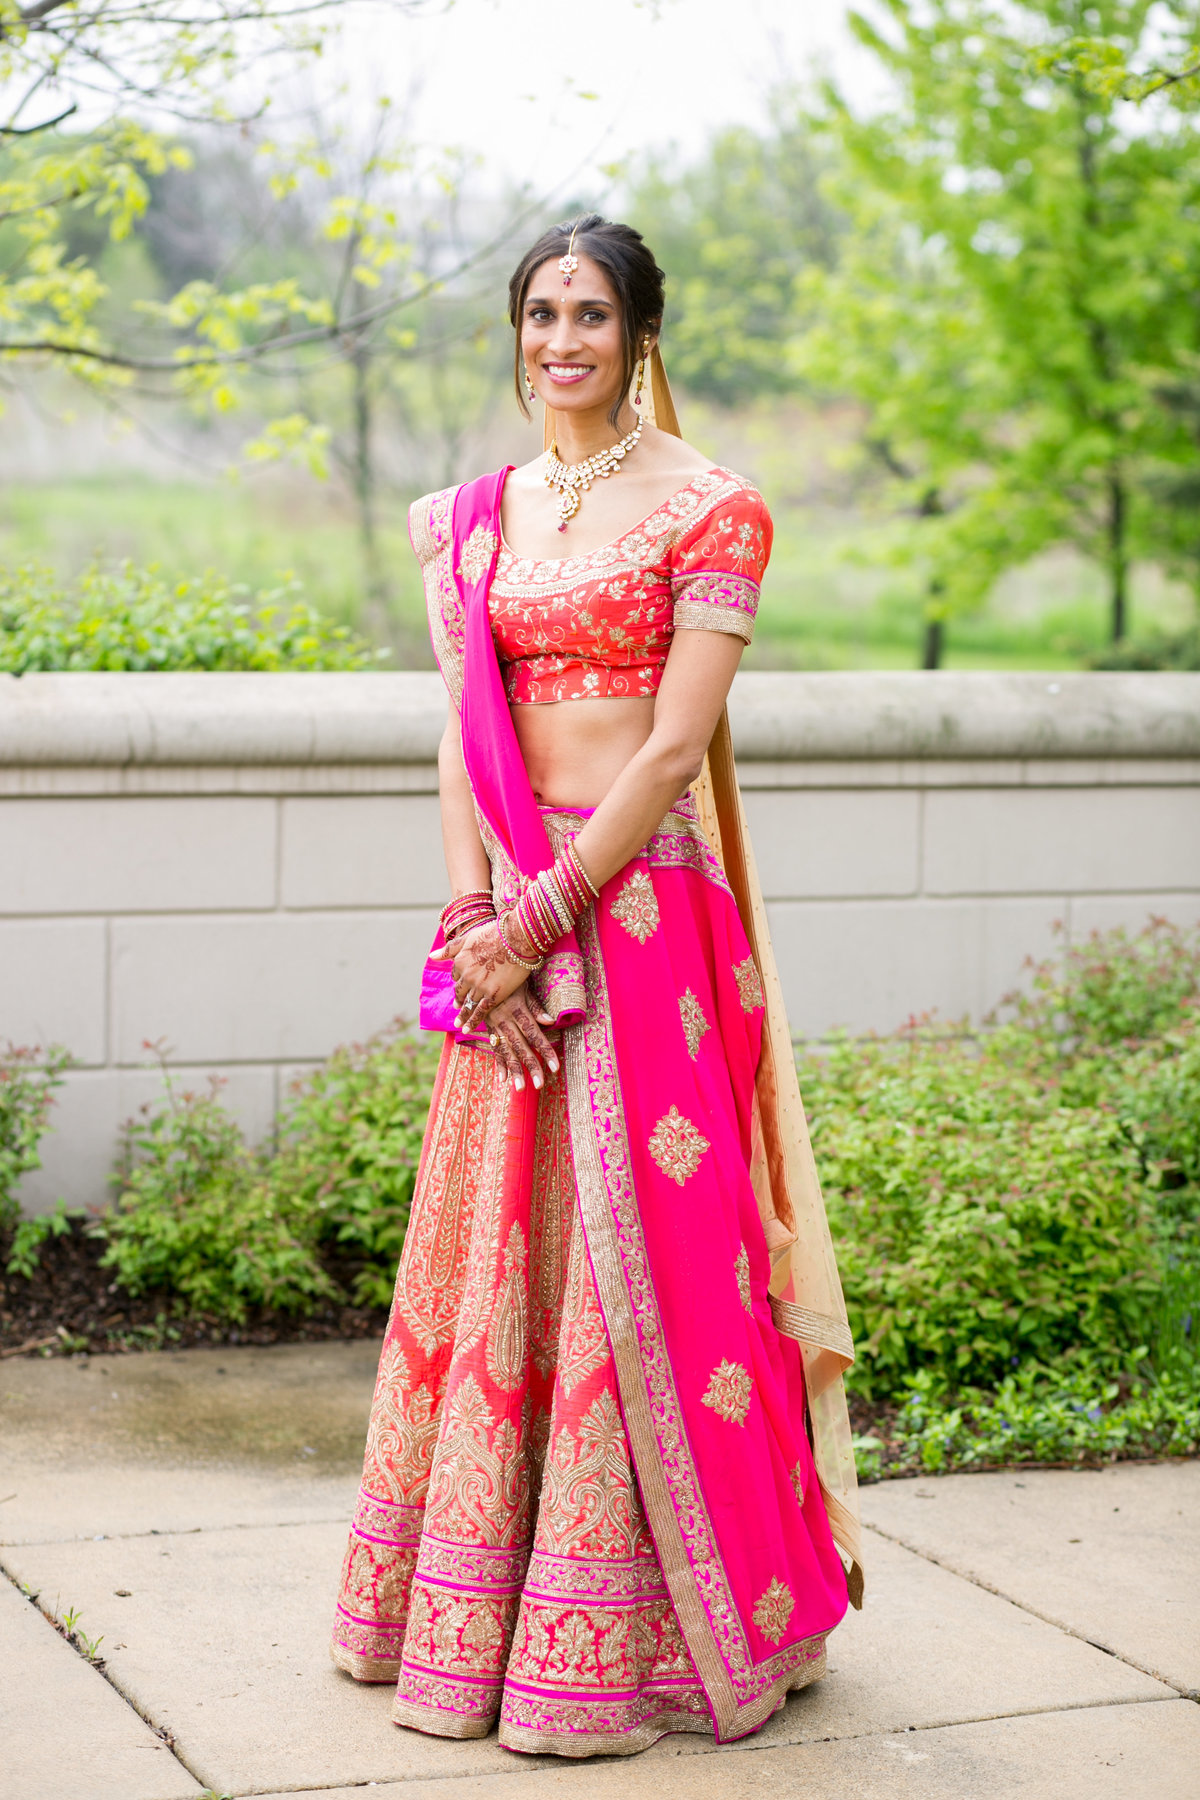 South-Asian-Wedding-Stonegate-Banquet-Center-024